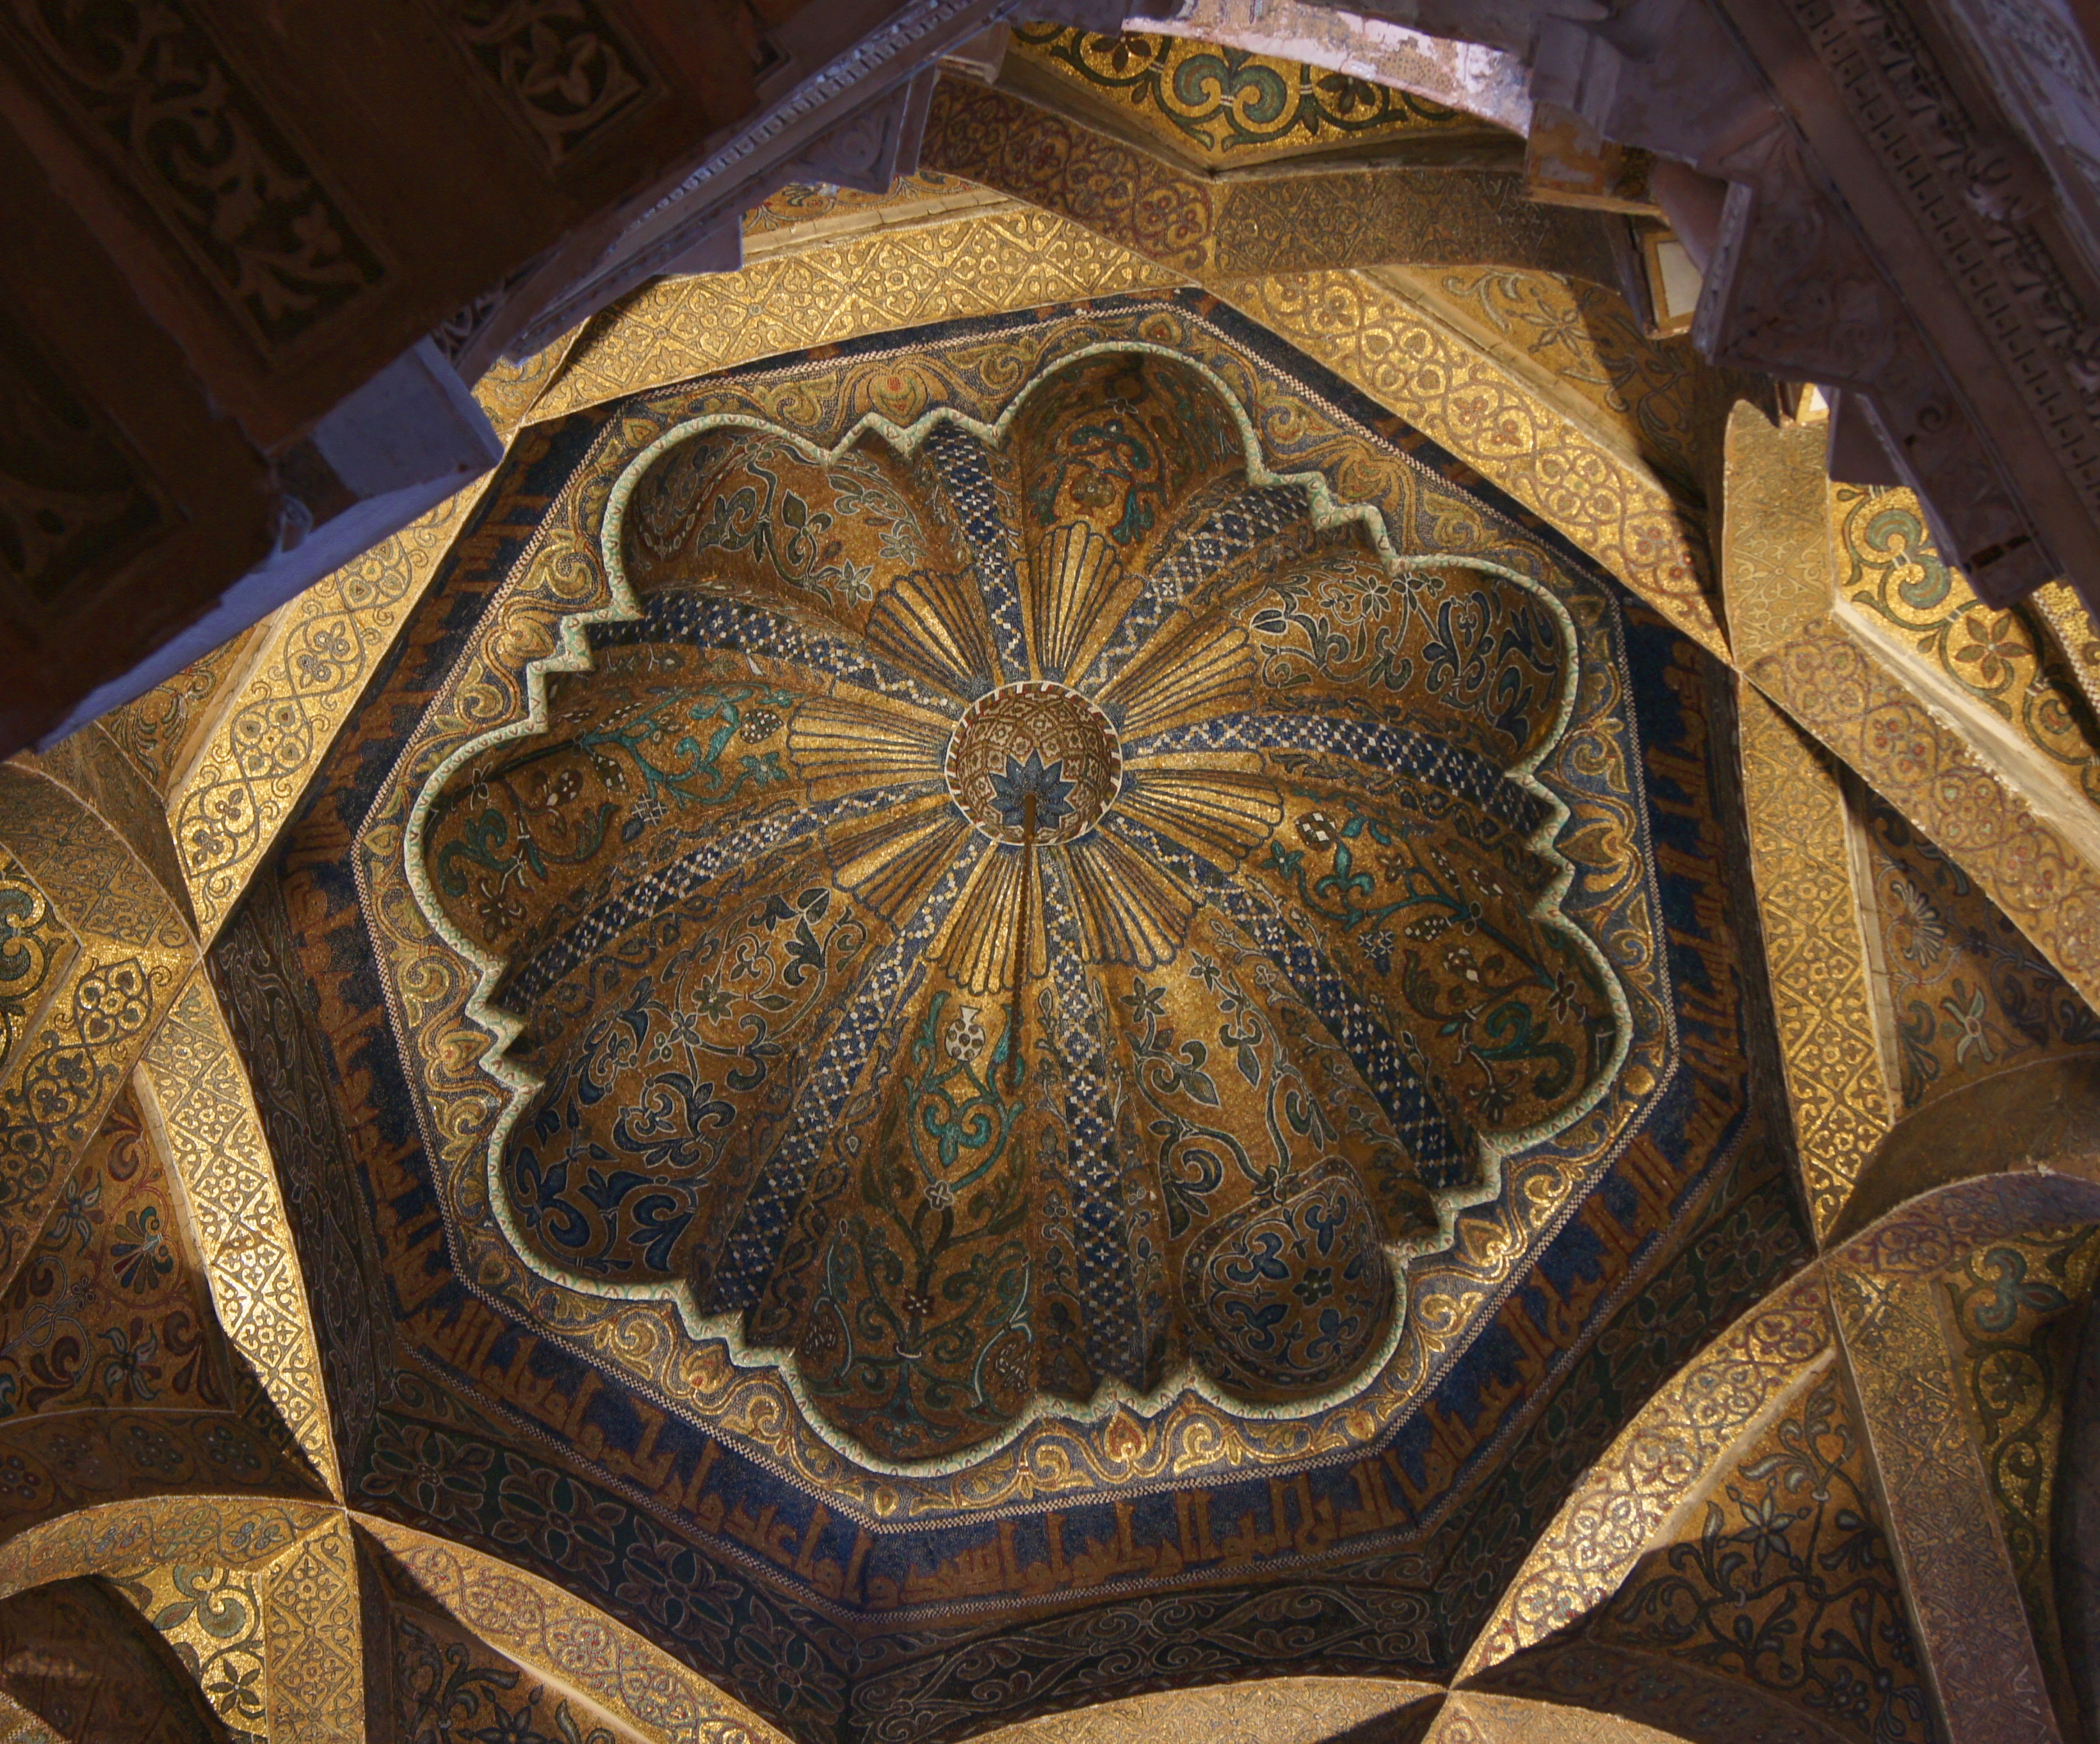 Minrab Dome, Great Mosque of Cordoba (photo: Jebulon)